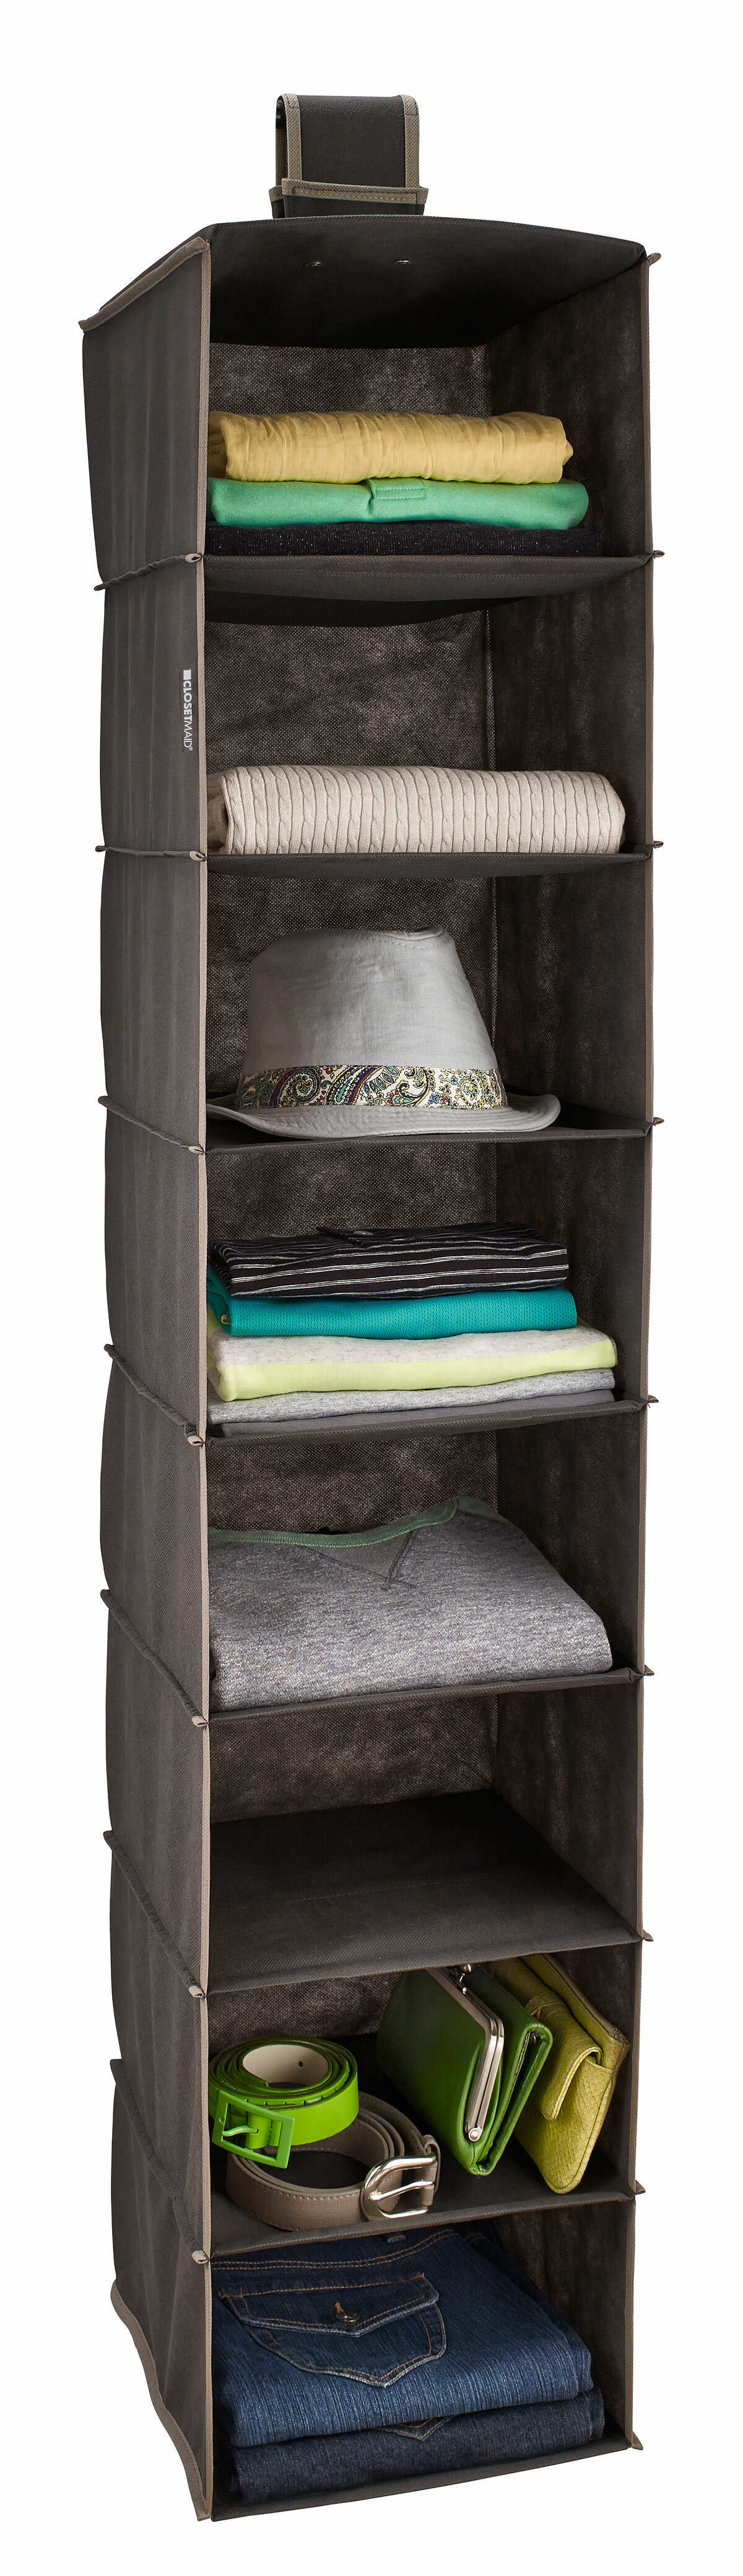 and your wall storage closet systems for of shelf wardrobe easy in external options inside rack walk full shelving drawers design organizer size shelves hanging organiser system layout